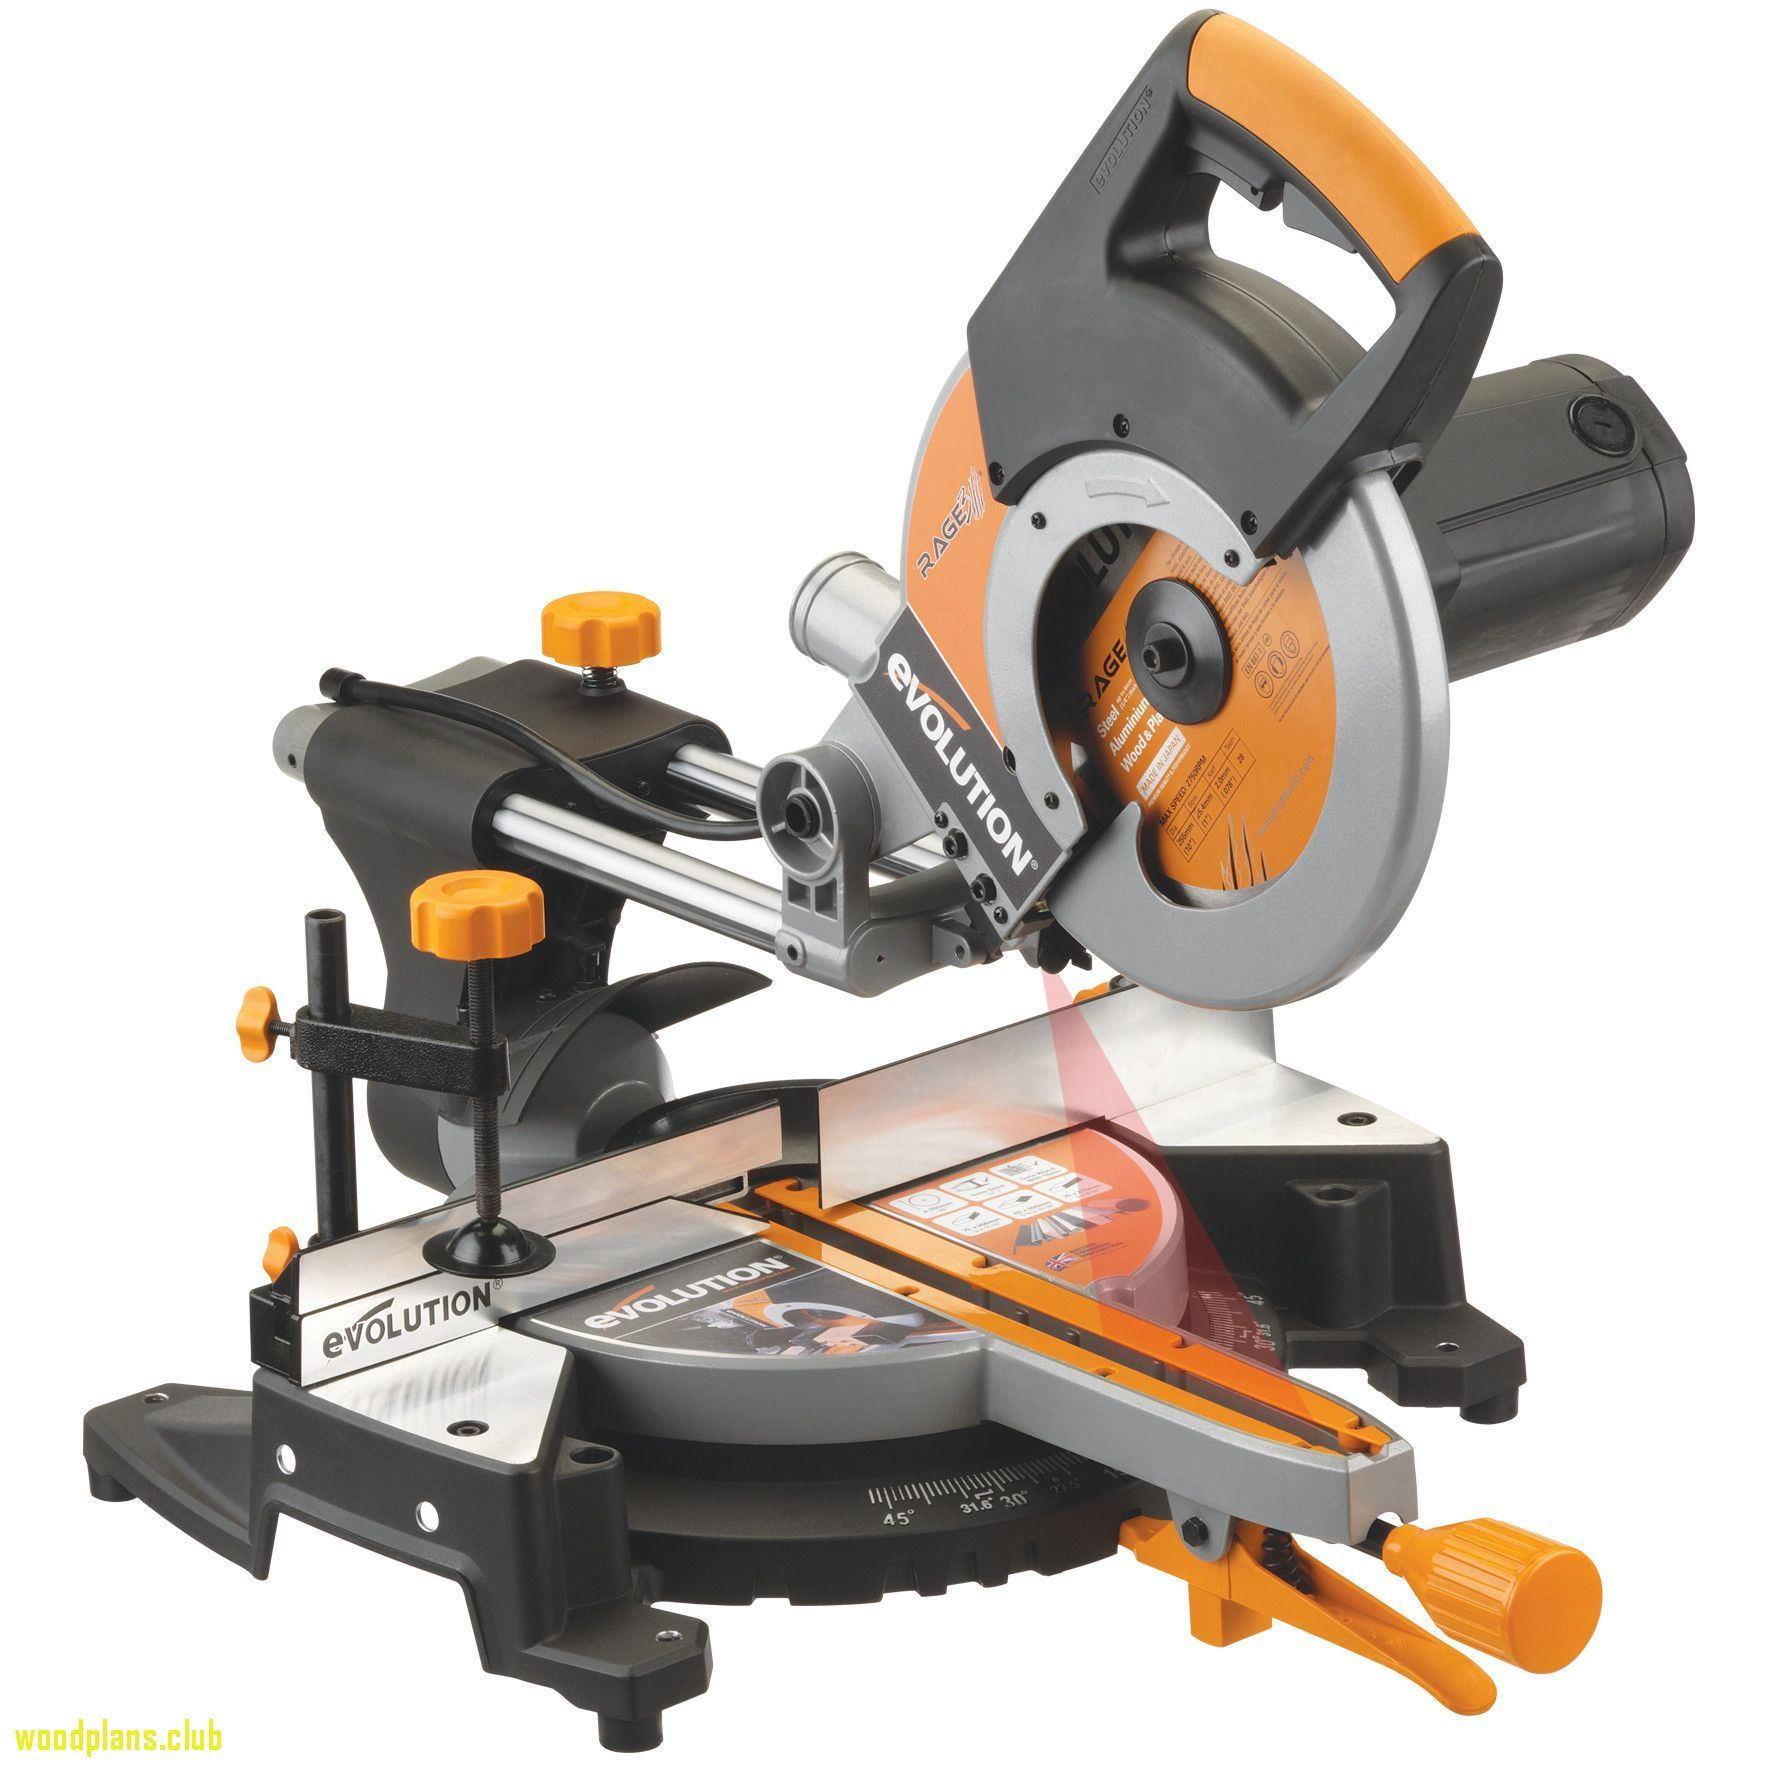 77 Woodworking Power Tools For Sale Best Paint To Paint Furniture